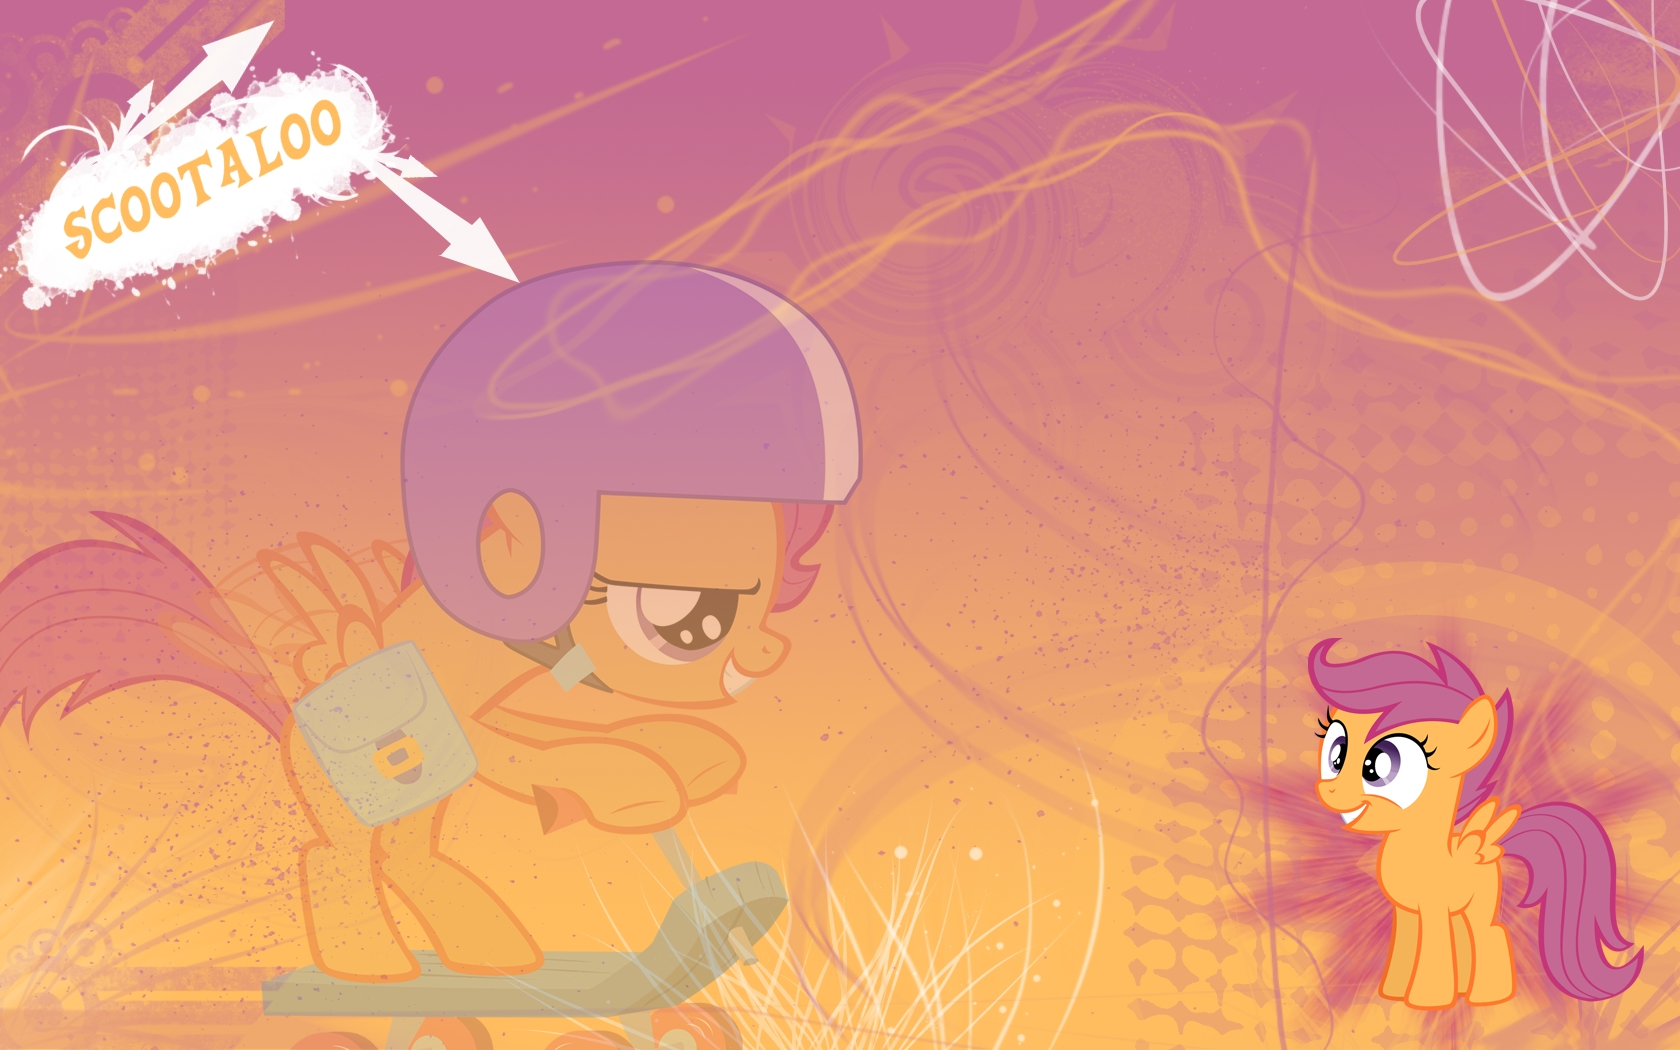 scootaloo-on-a-scooter.jpg